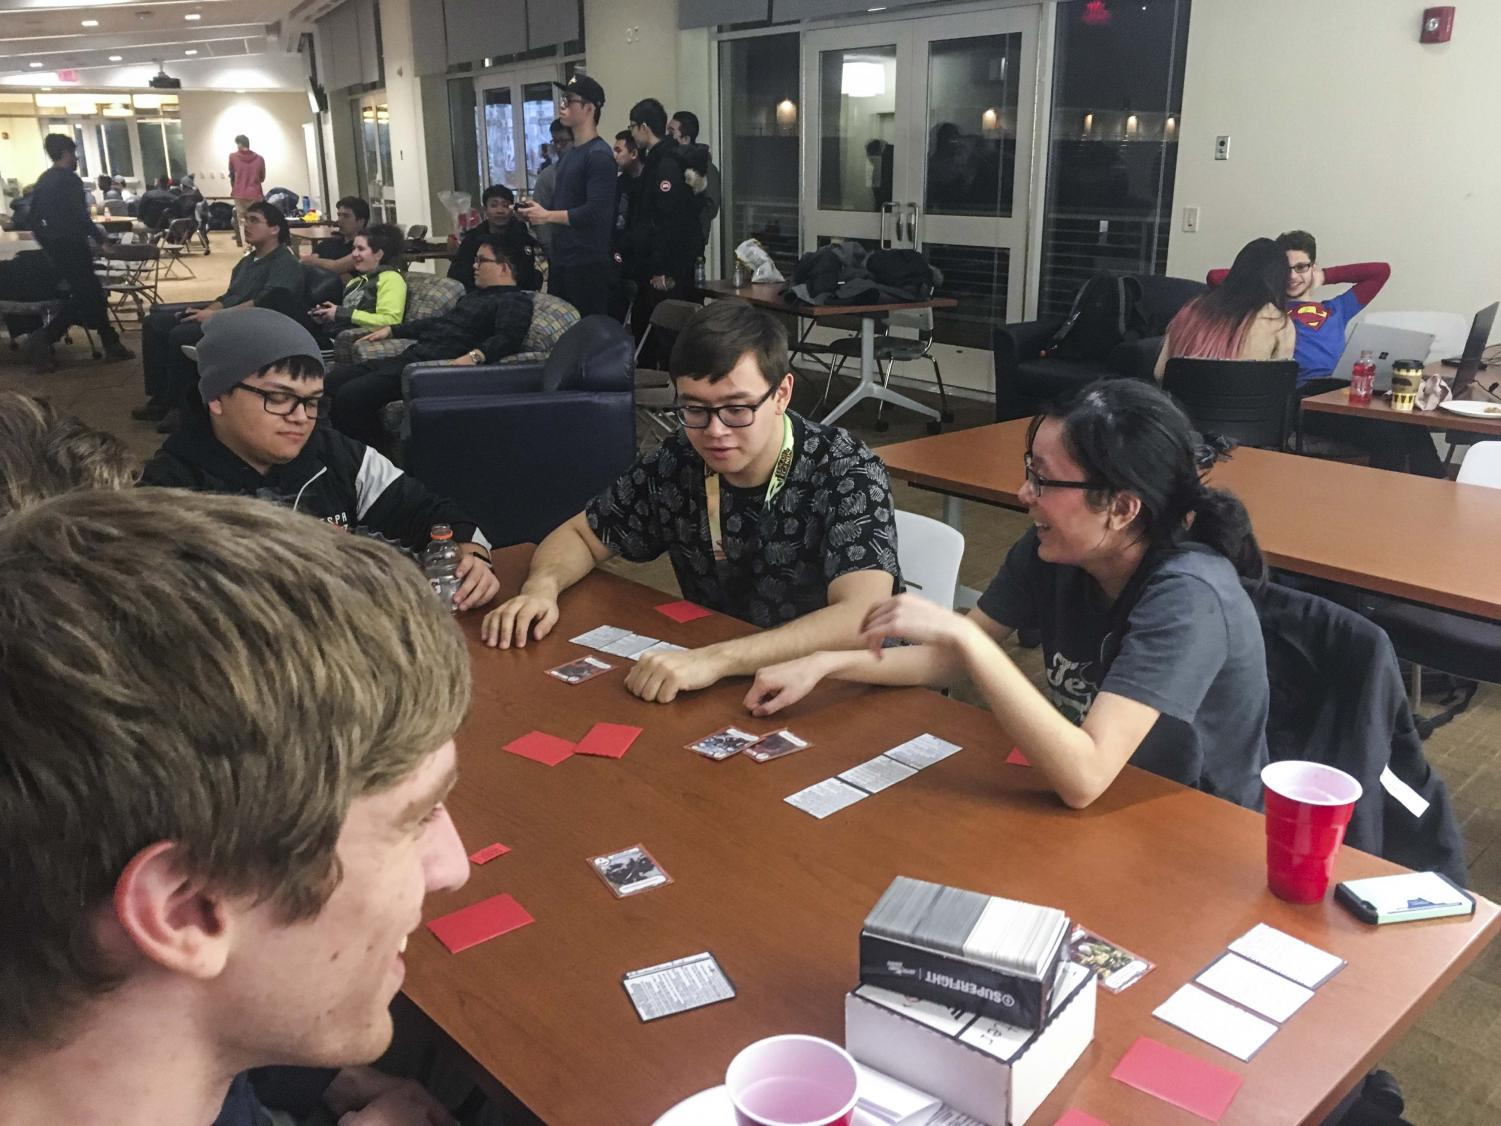 Taking a break from competing, students played a few card games to pass the time.